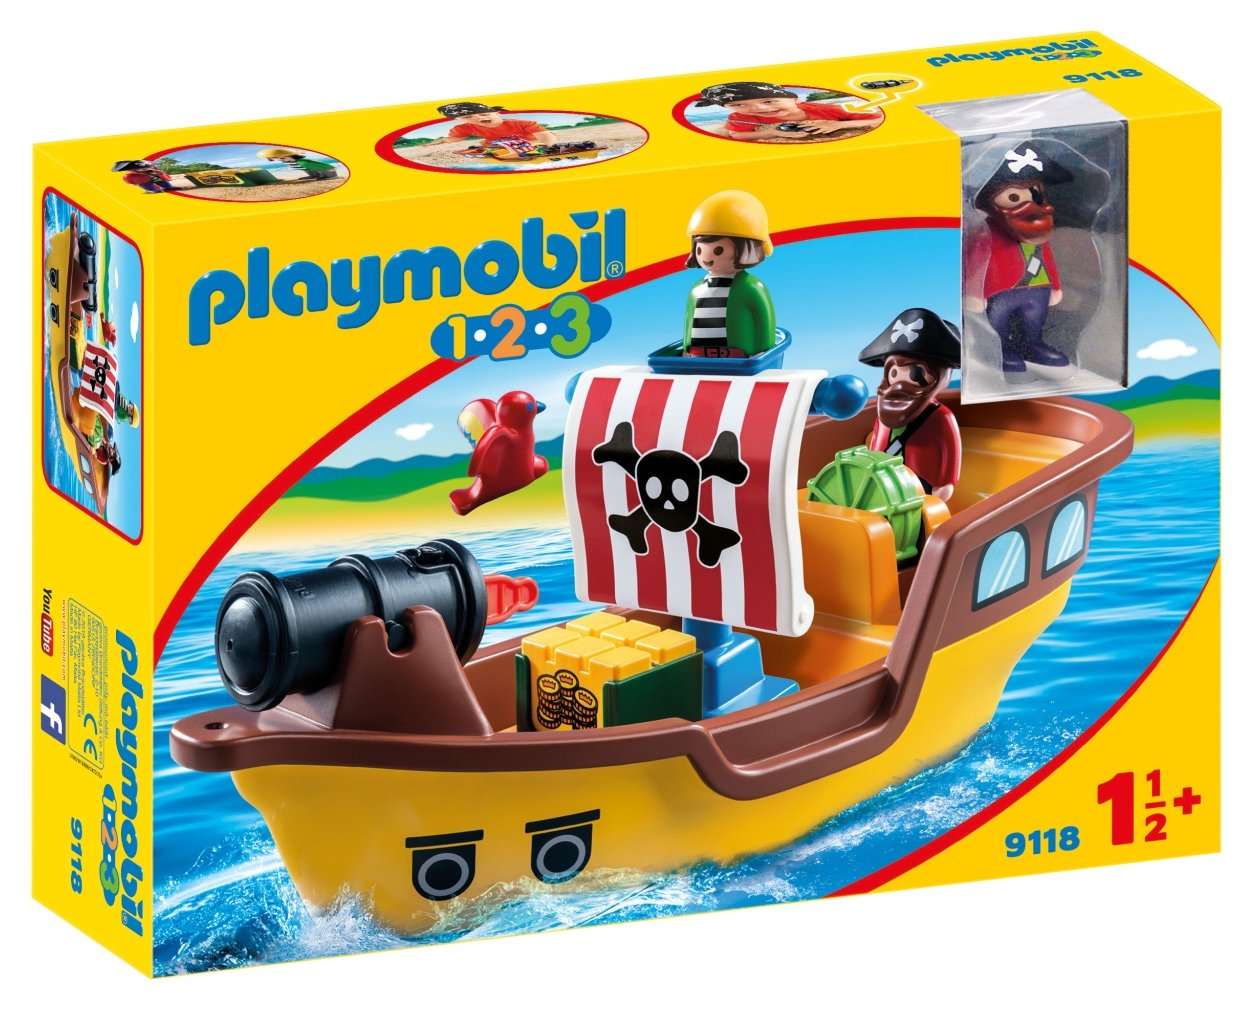 Playmobil 9118 1.2.3 Floating Pirate Ship